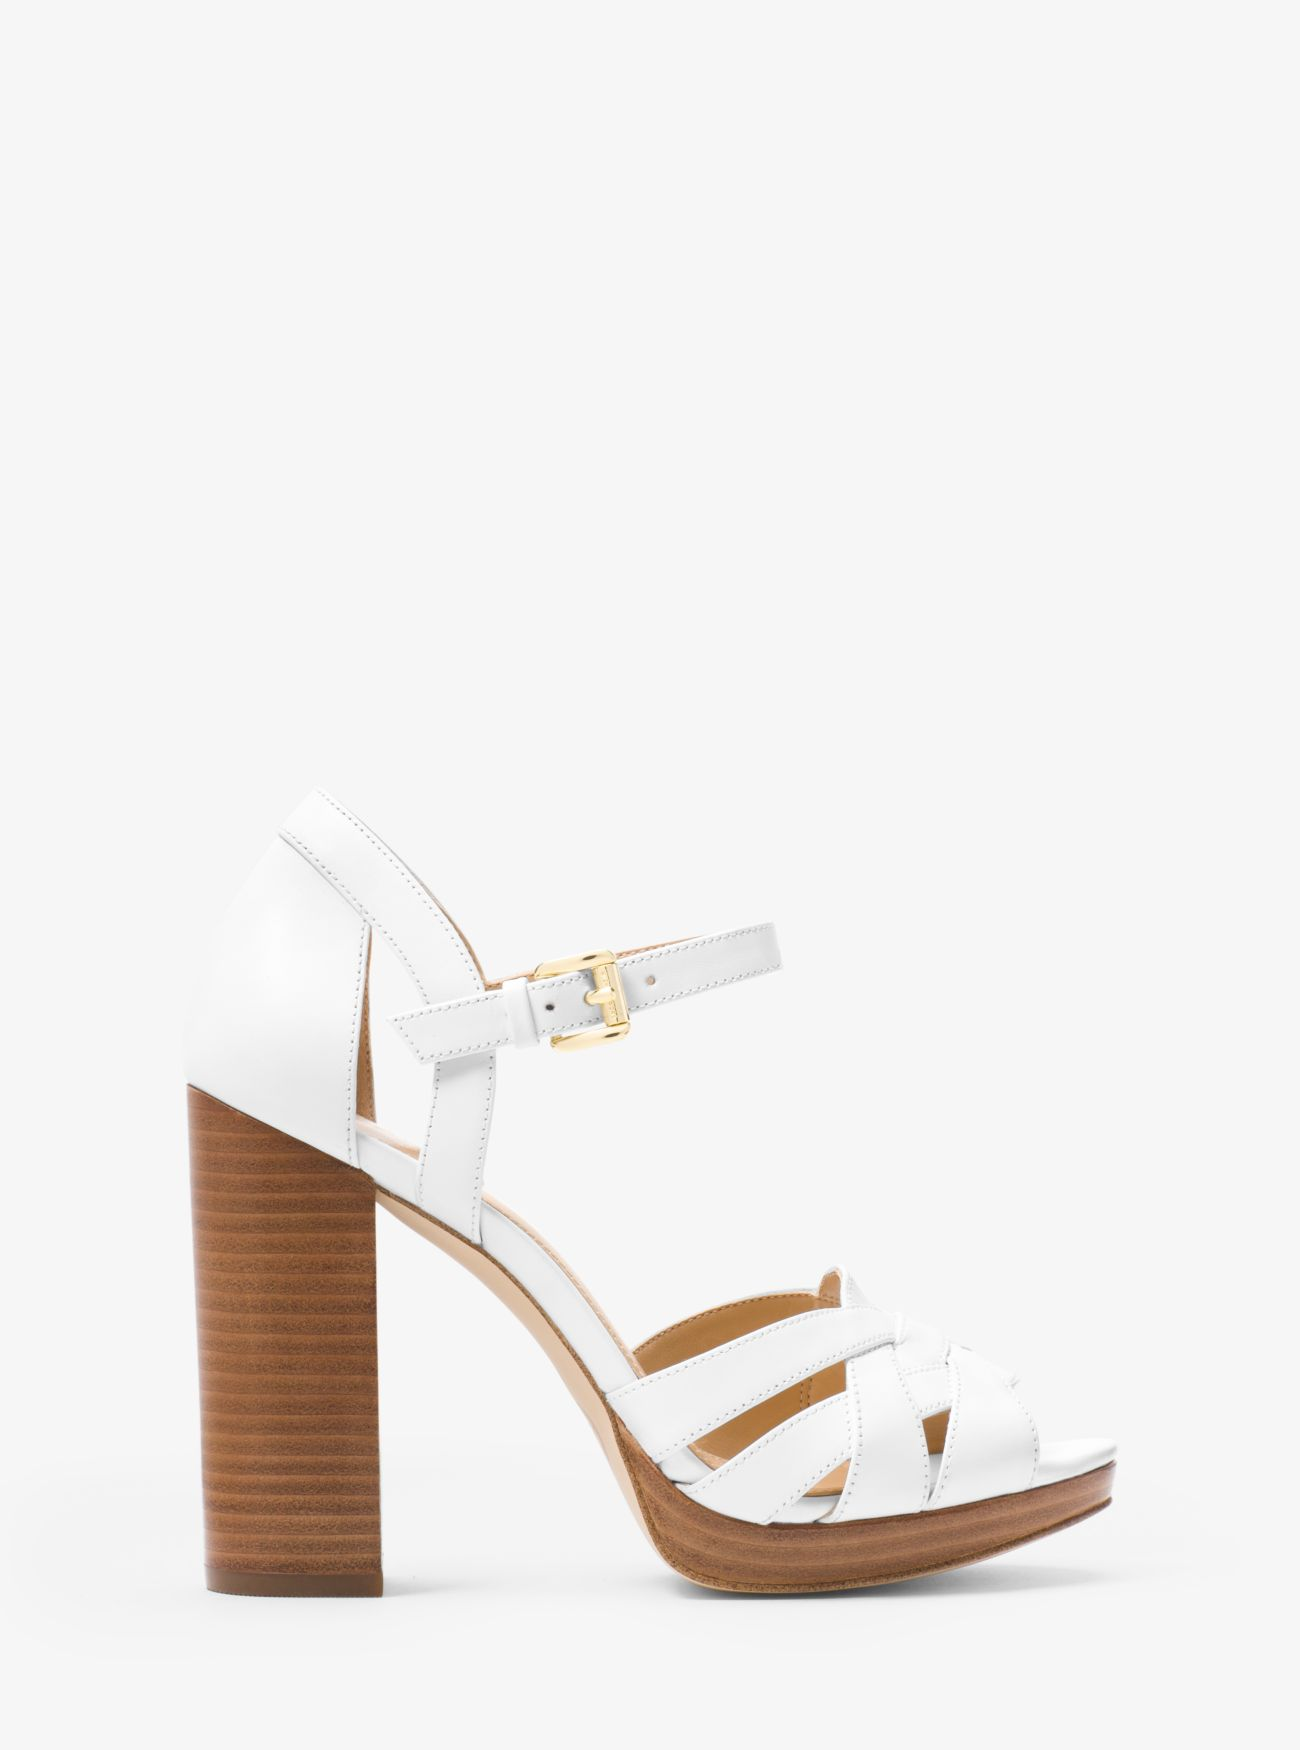 Annaliese Leather Platform Sandal Michael Kors